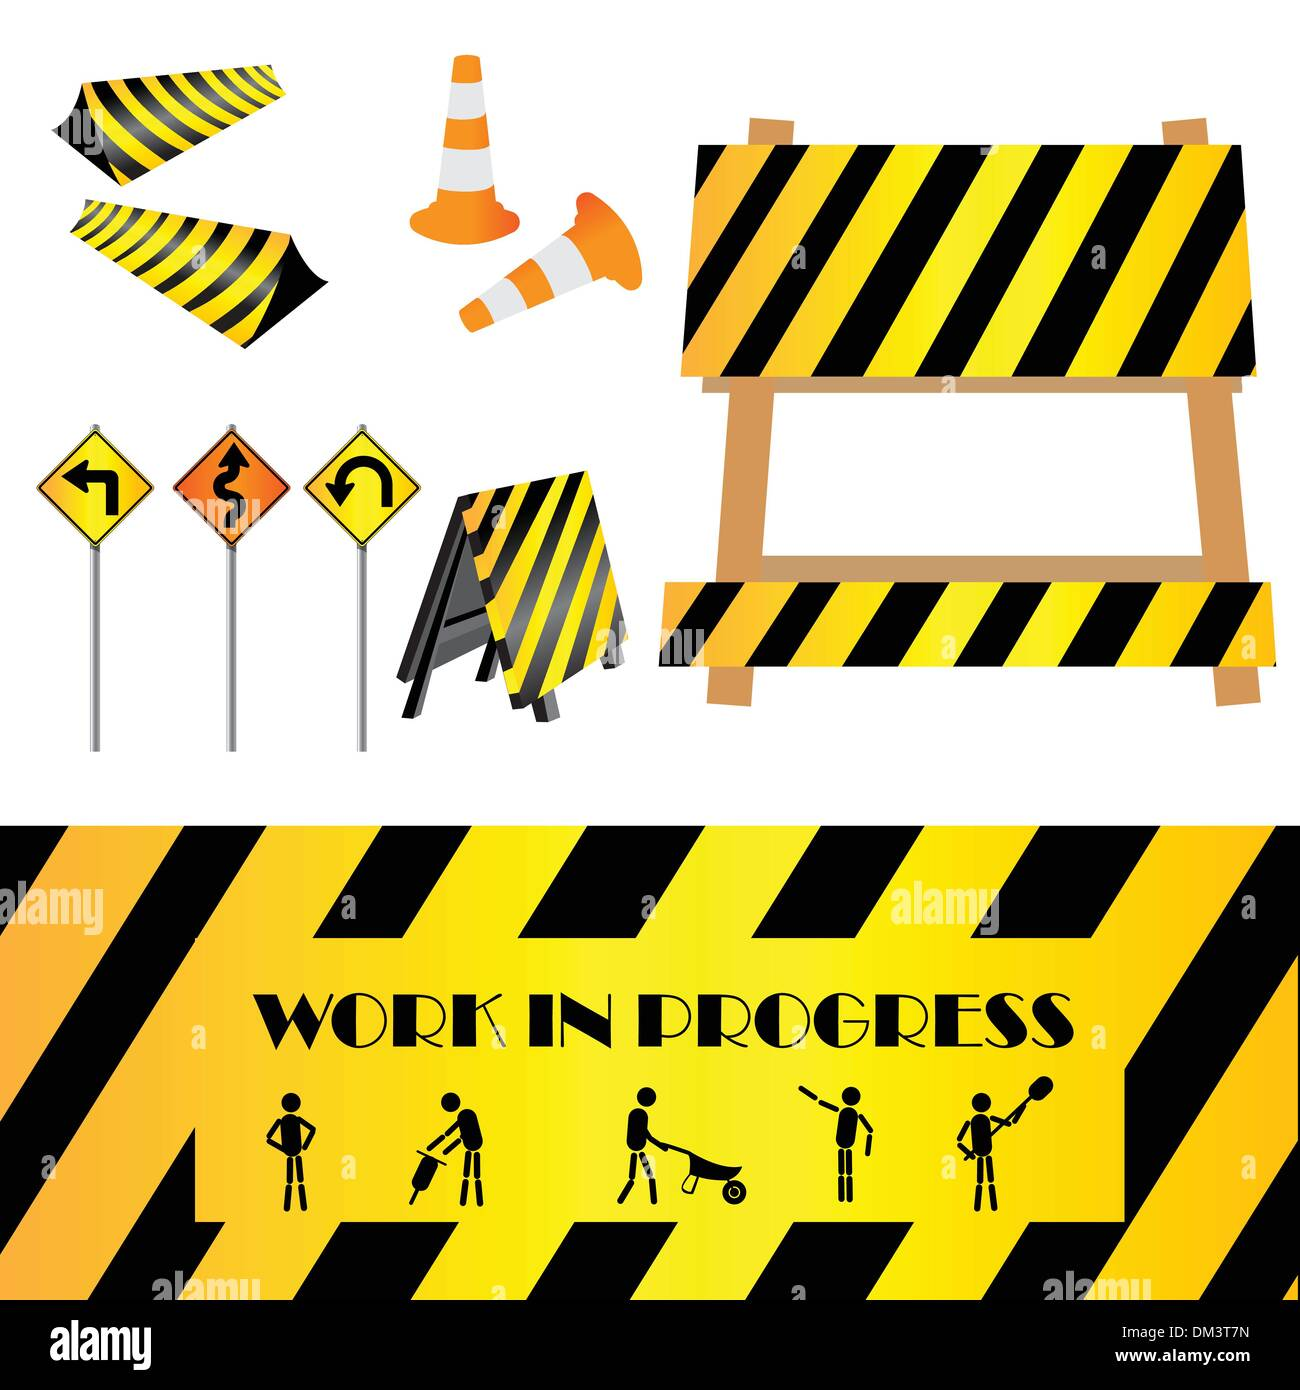 Work in progress - Stock Vector